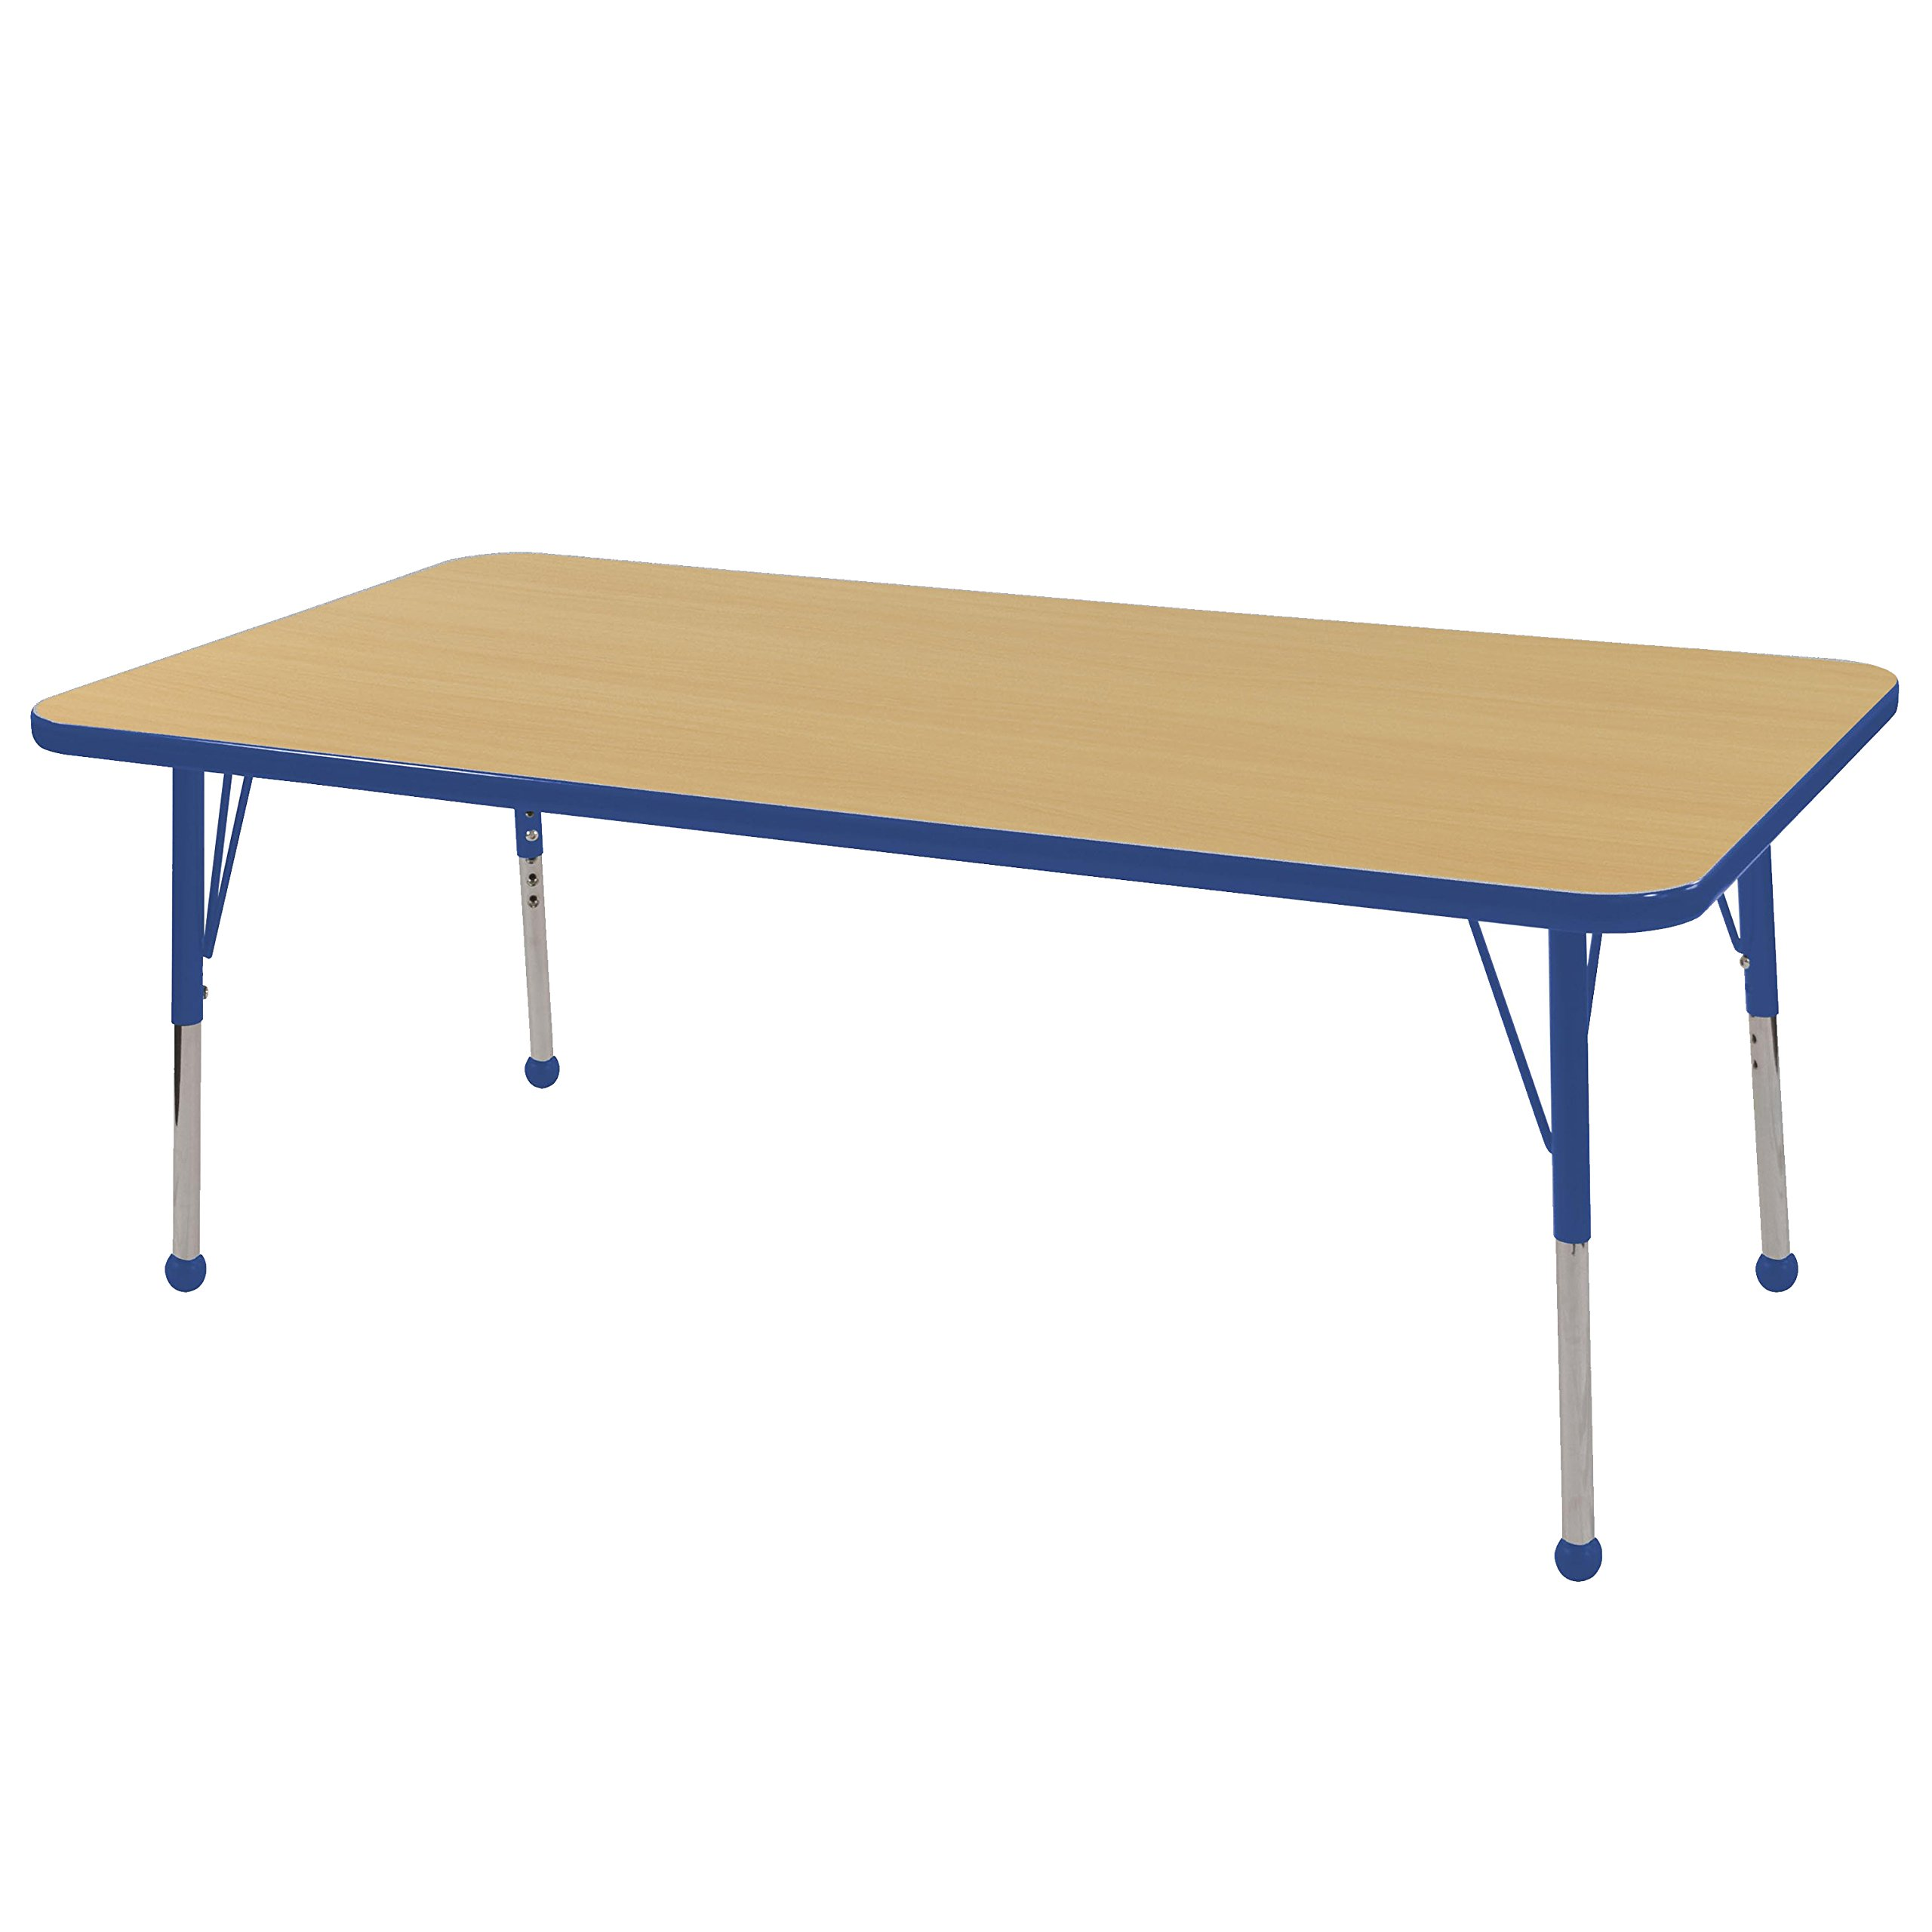 ECR4Kids T-Mold 24'' x 60'' Rectangular Activity School Table, Standard Legs w/ Ball Glides, Adjustable Height 19-30 inch (Maple/Blue) by ECR4Kids